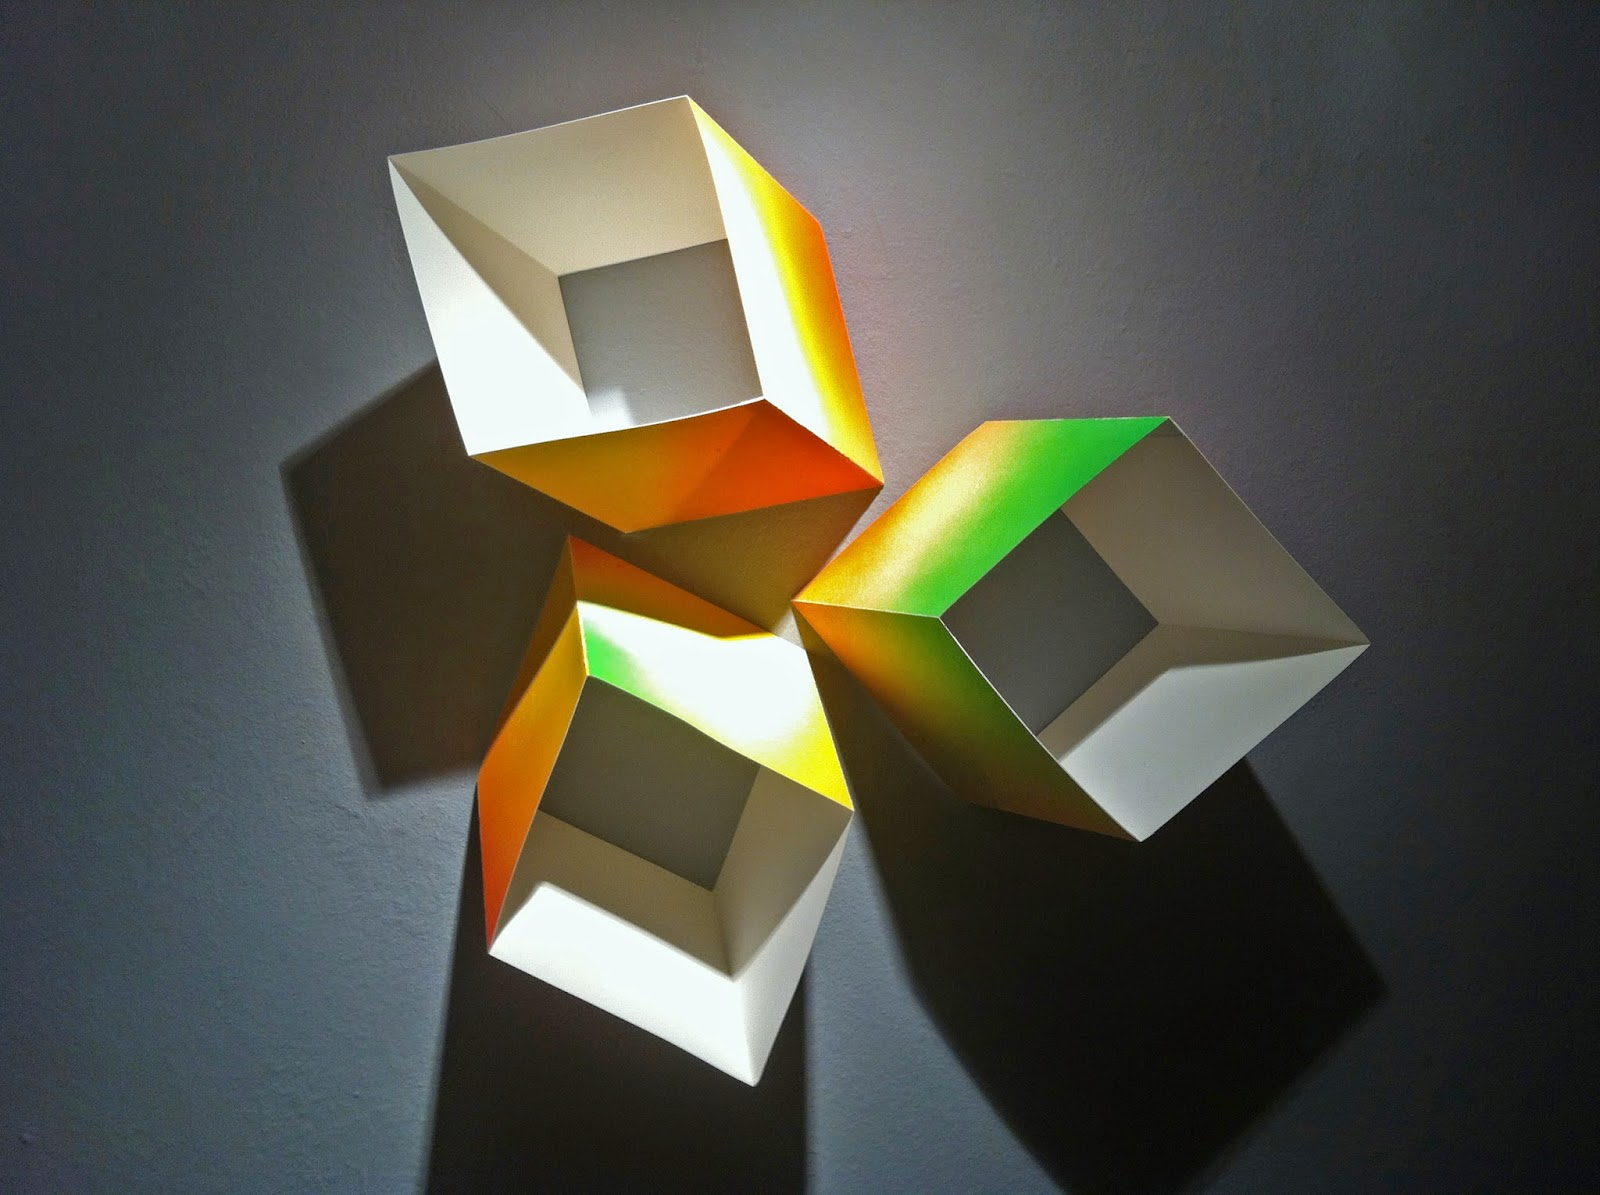 Wall-Mounted Geometric Paper Sculpture